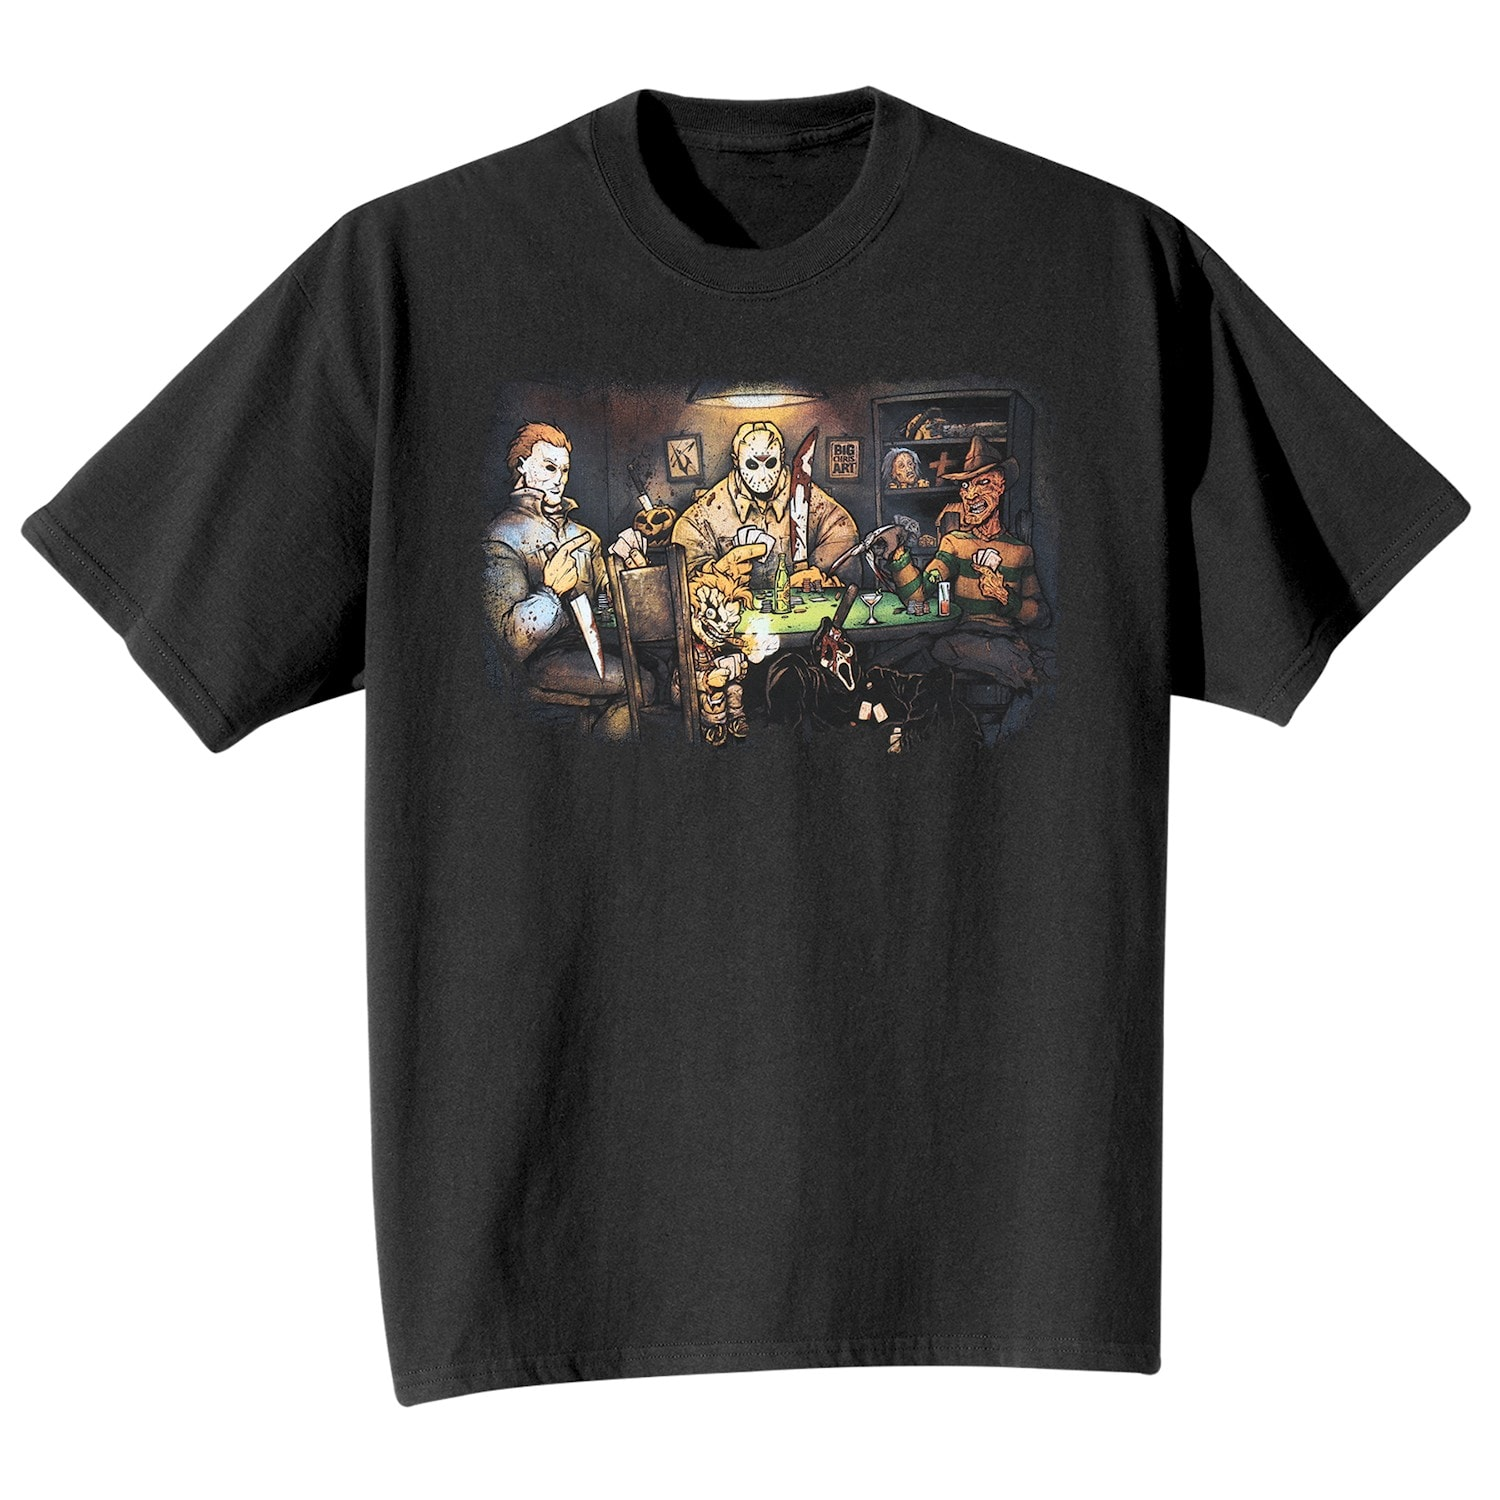 Details about Get Down Art Unisex Horror Movie Slashers Playing Poker  T-Shirt - Black Tee